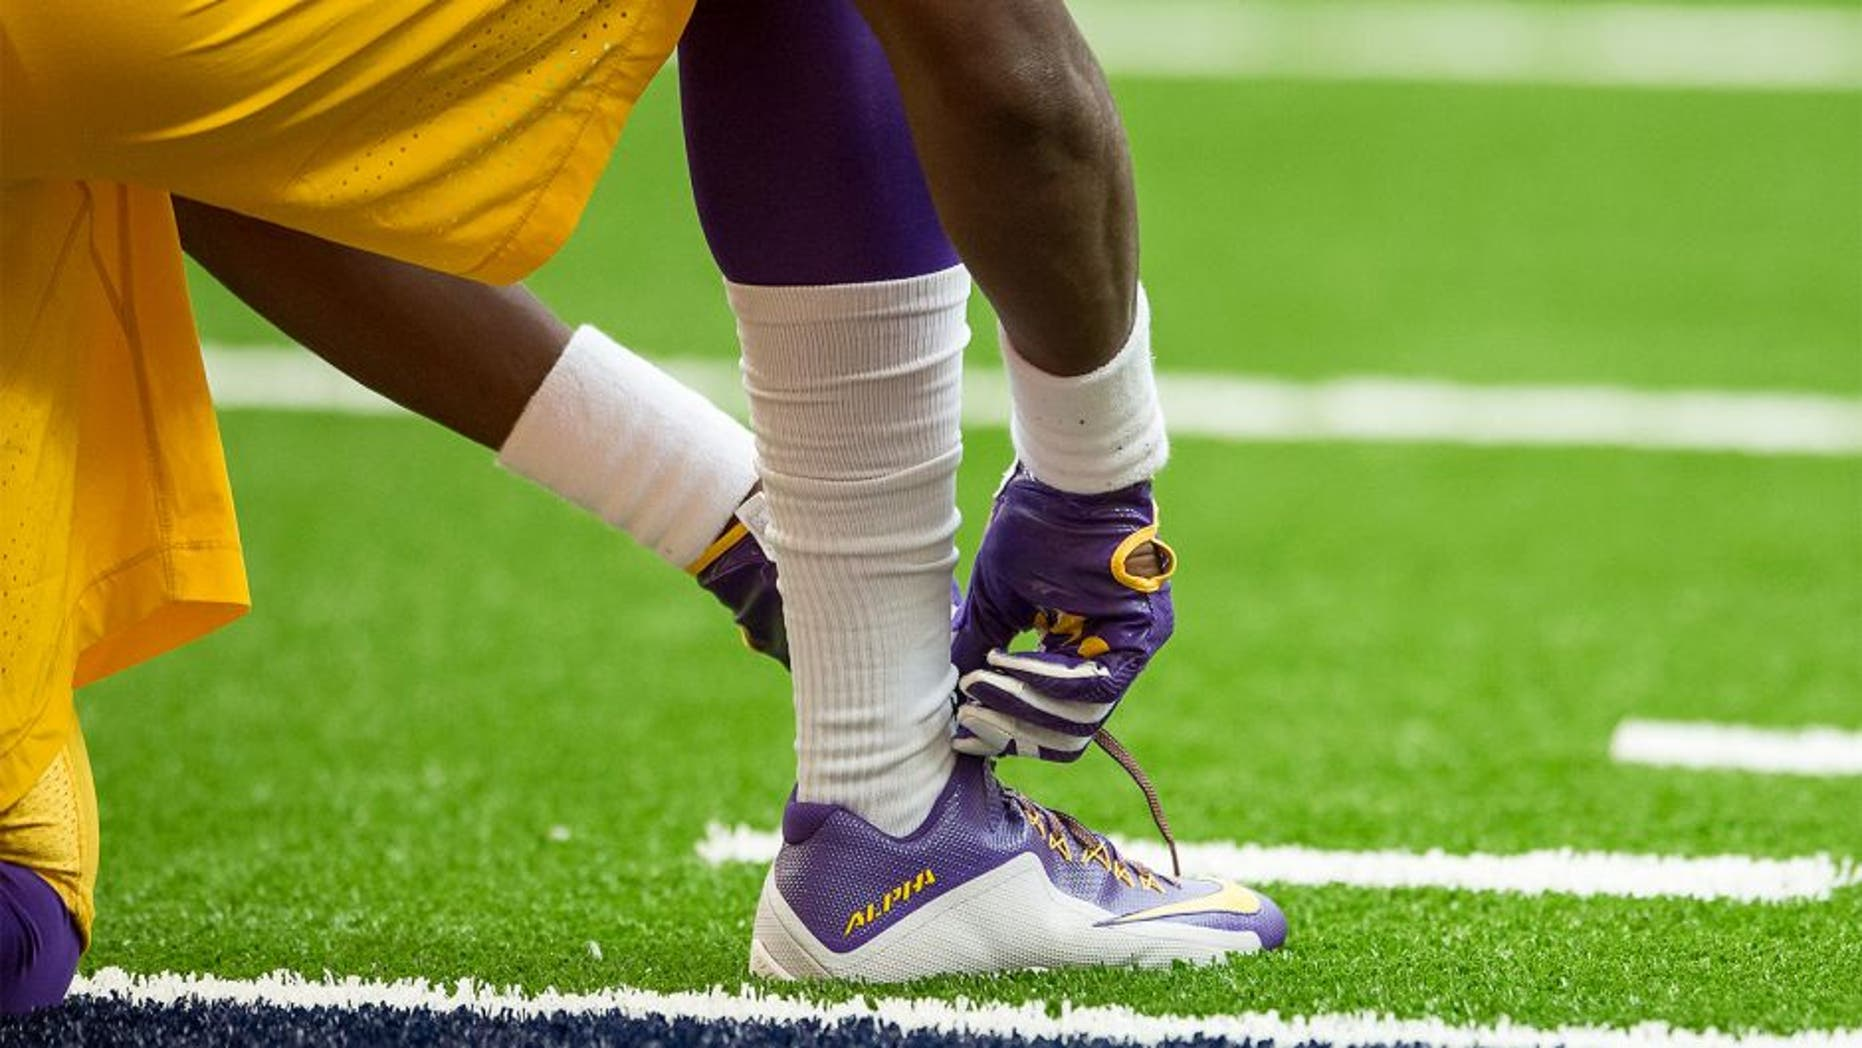 SYRACUSE, NY - SEPTEMBER 26: Nike football cleats worn by LSU Tigers before the game against the Syracuse Orange on September 26, 2015 at The Carrier Dome in Syracuse, New York. LSU defeats Syracuse 34-24. (Photo by Brett Carlsen/Getty Images)